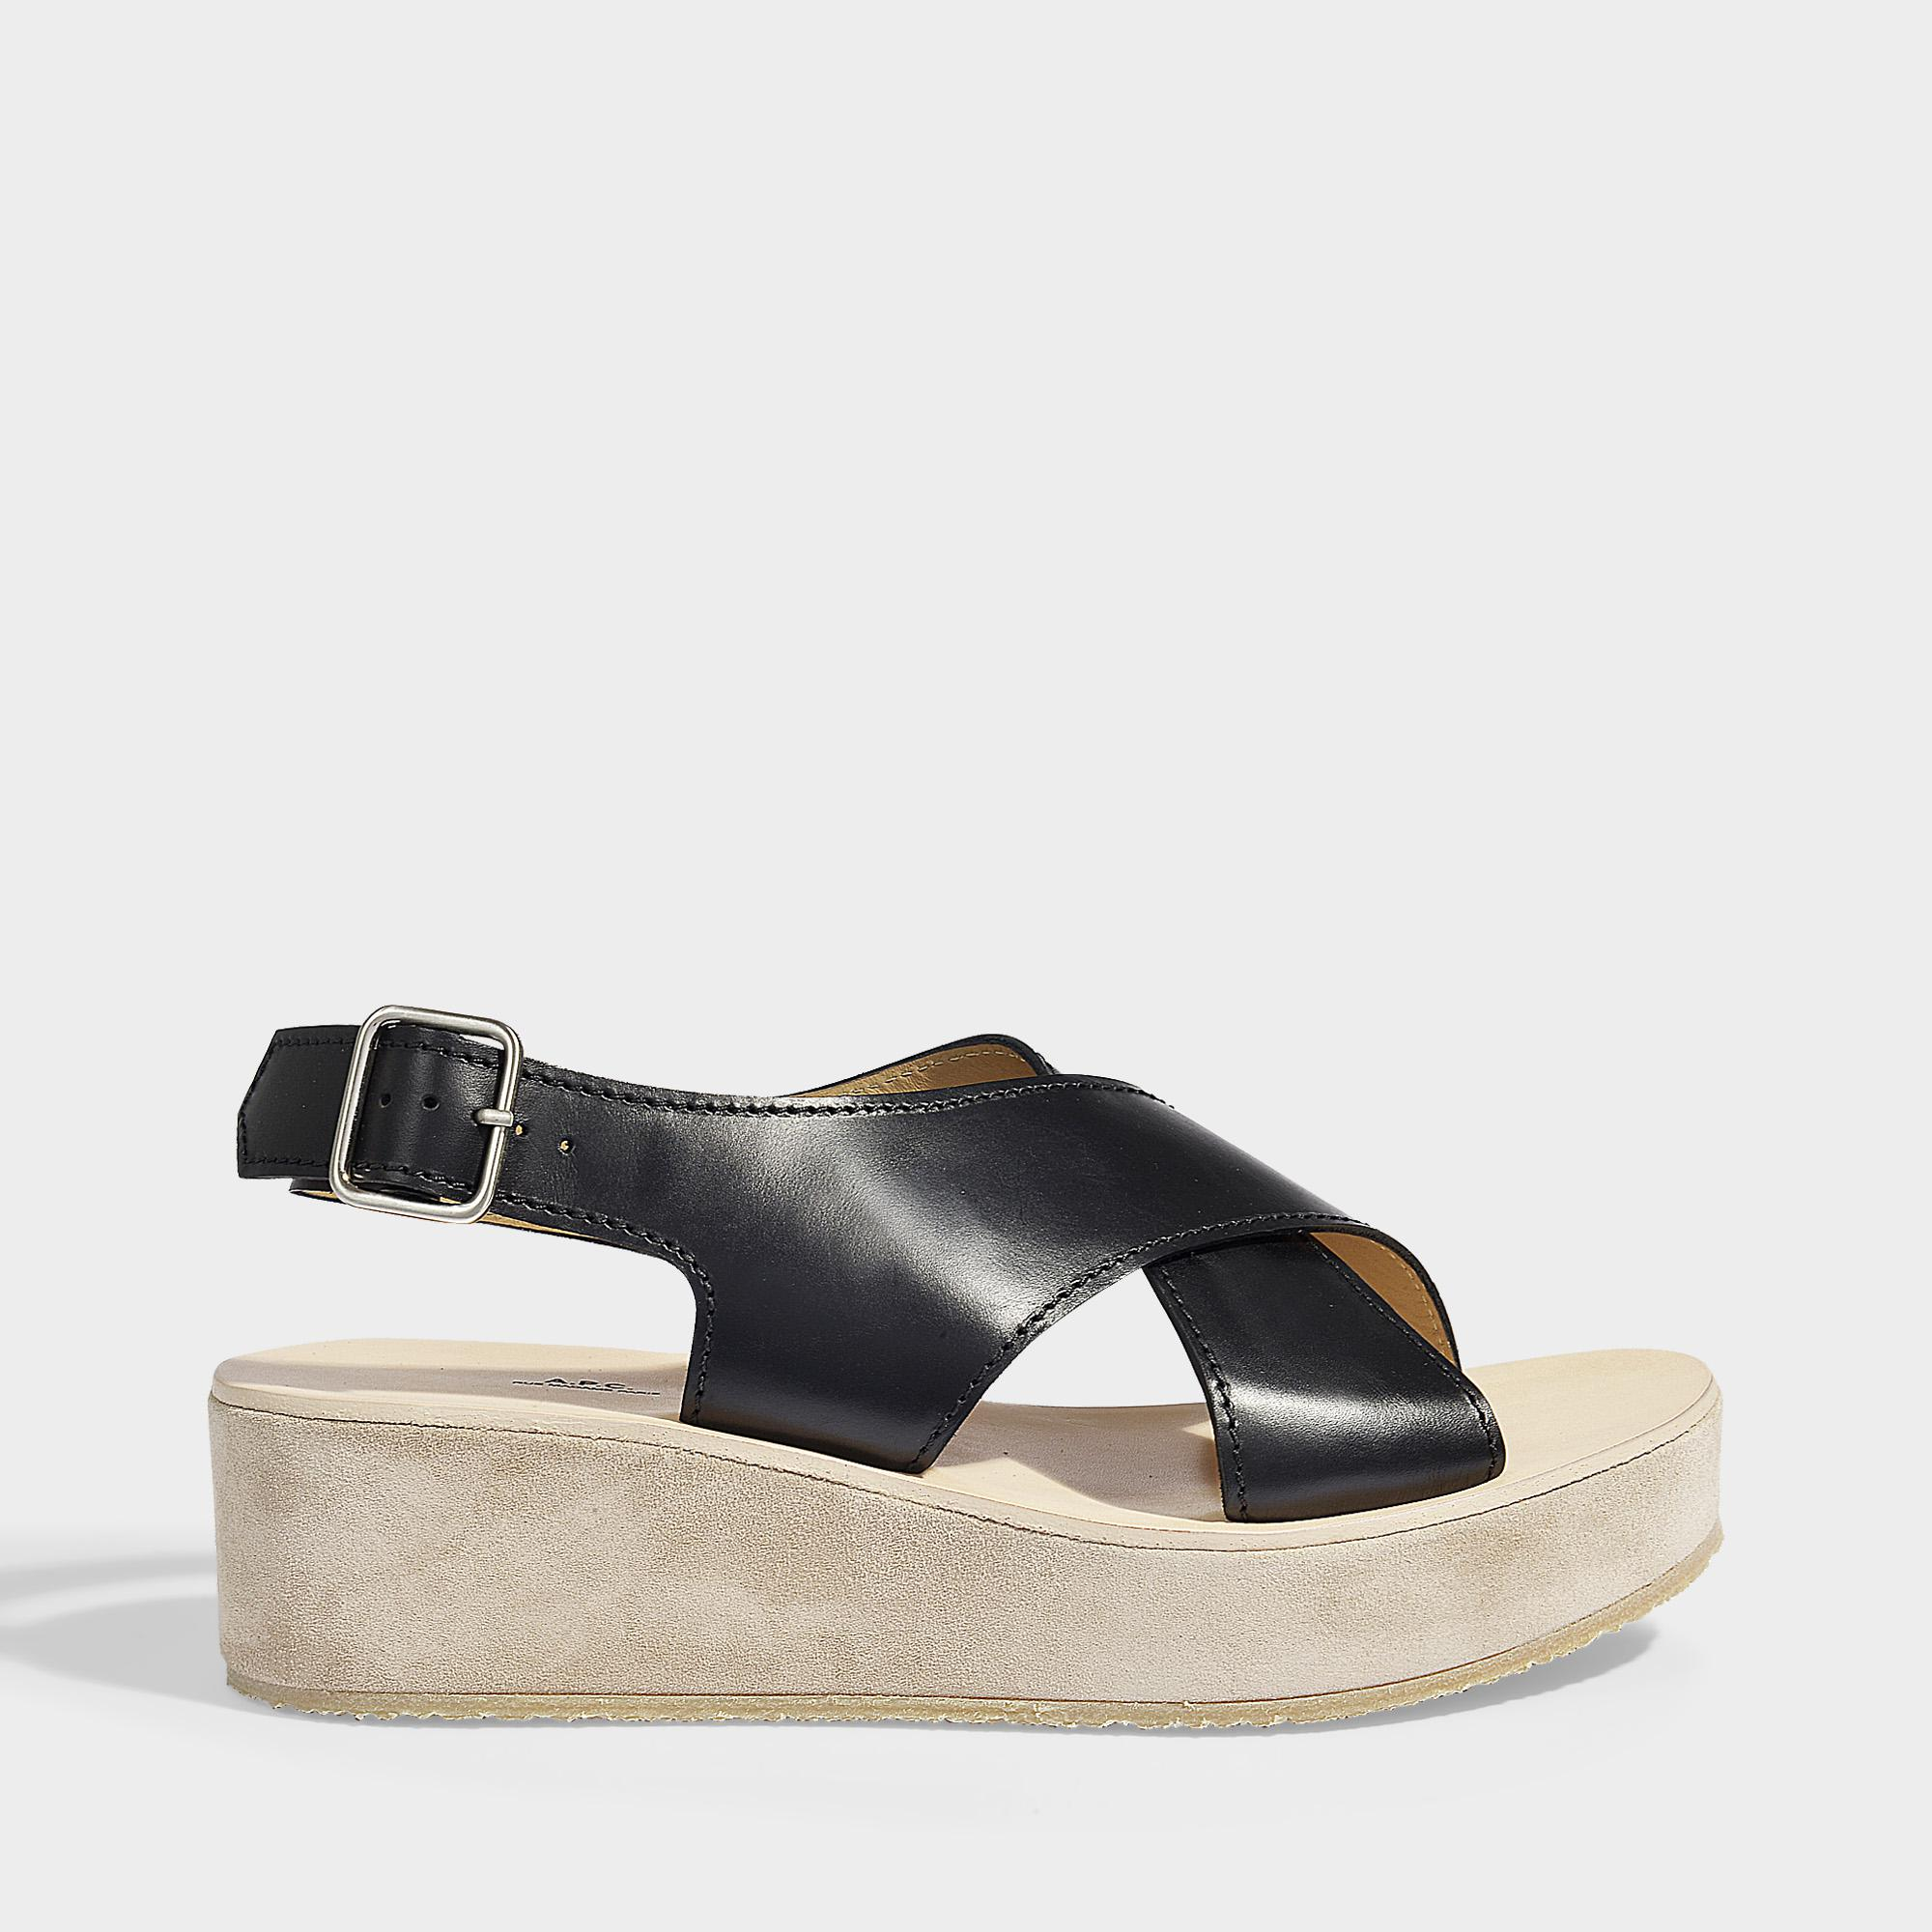 74e25913df5 A.P.C. Mae Sandals In Black Smooth Leather in Black - Lyst